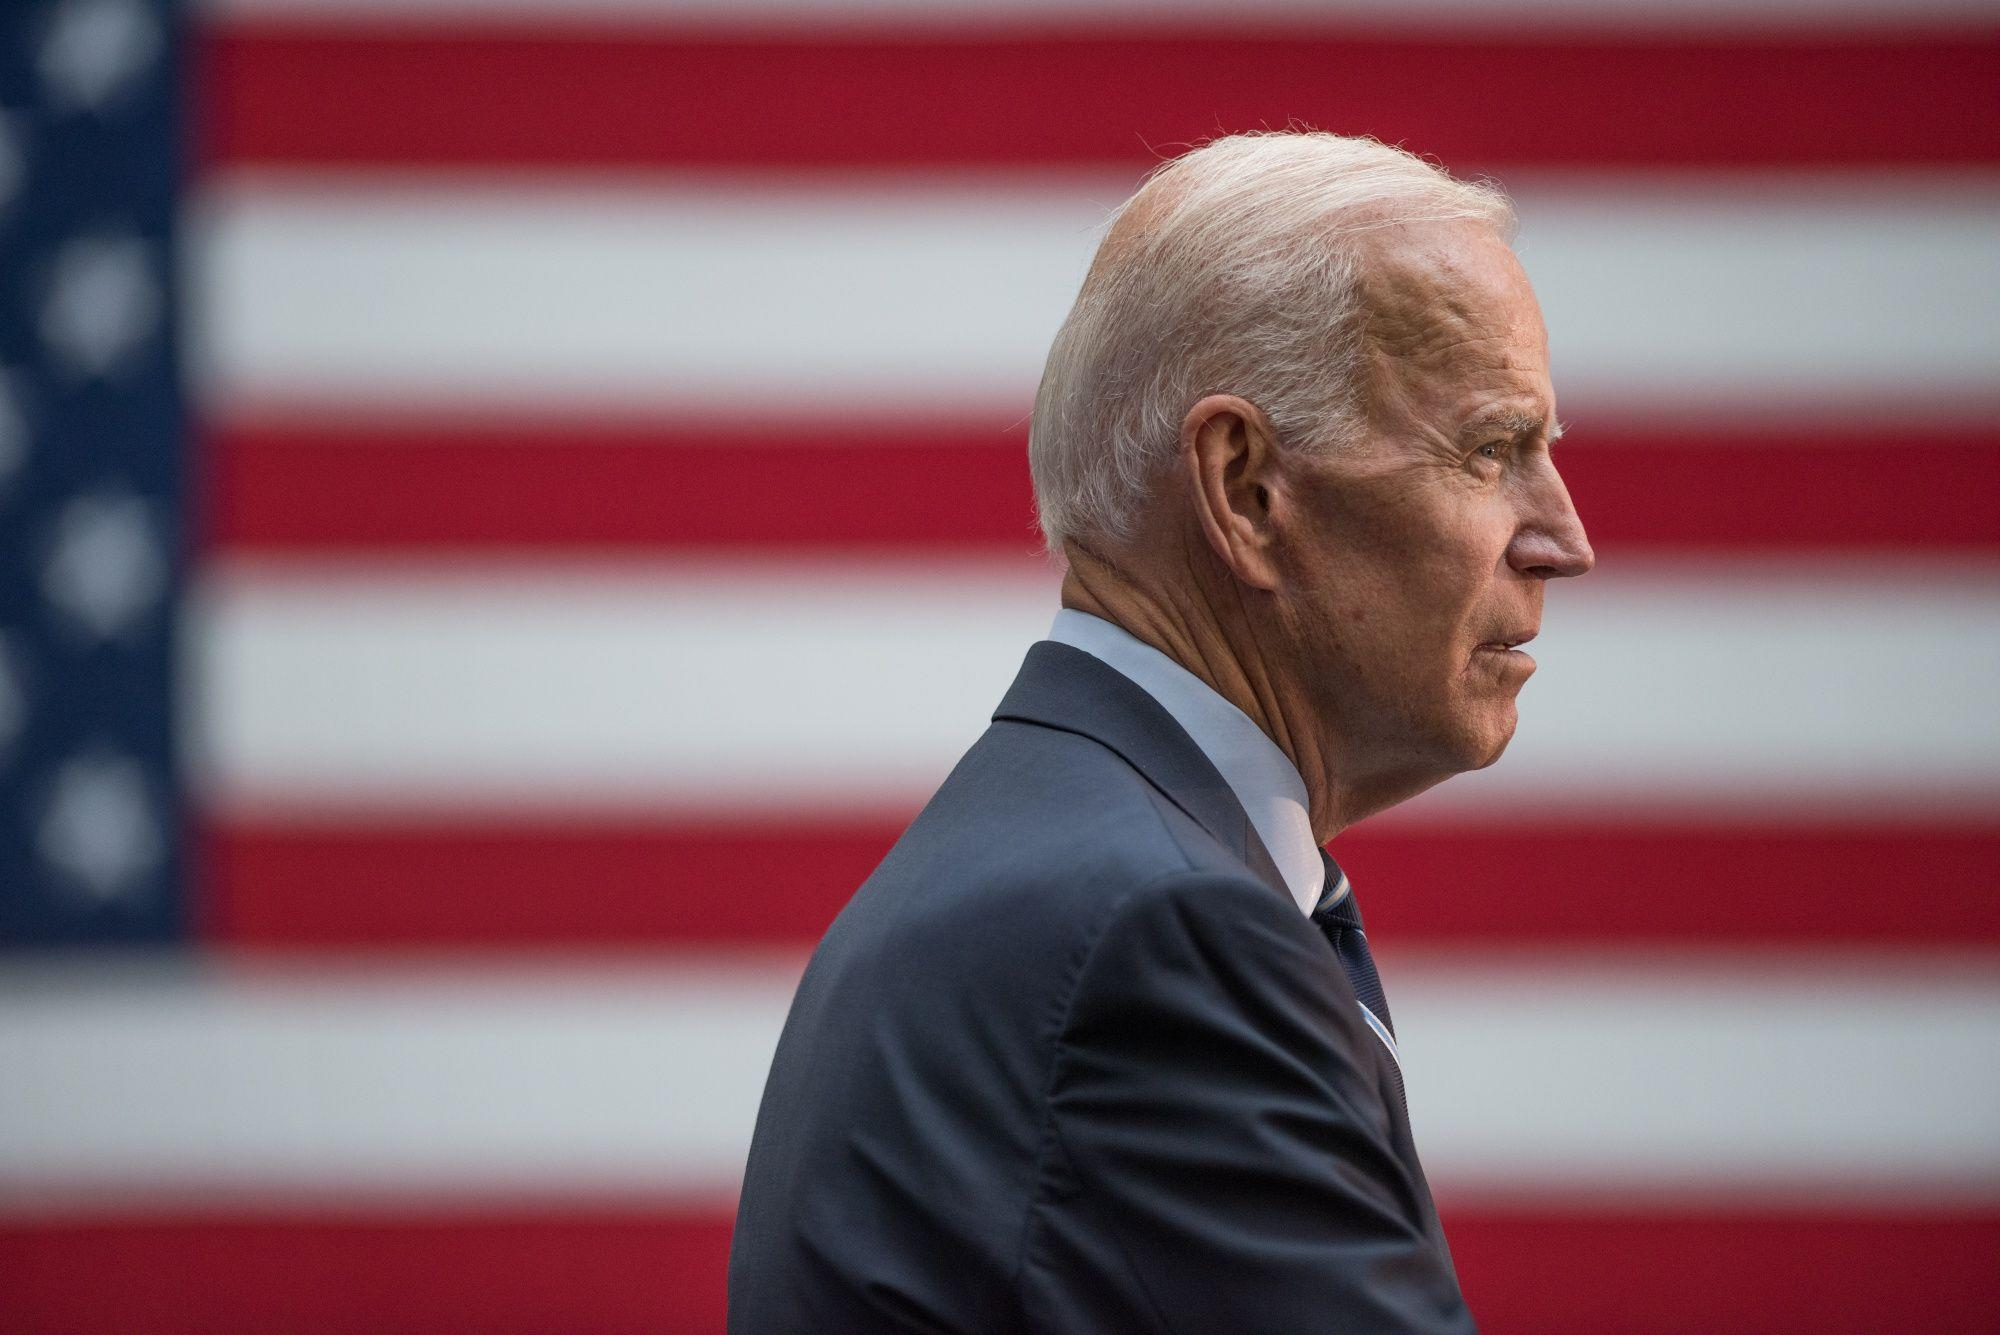 Joe Biden Says 'Poor Kids Are Just As Bright' As White Kids